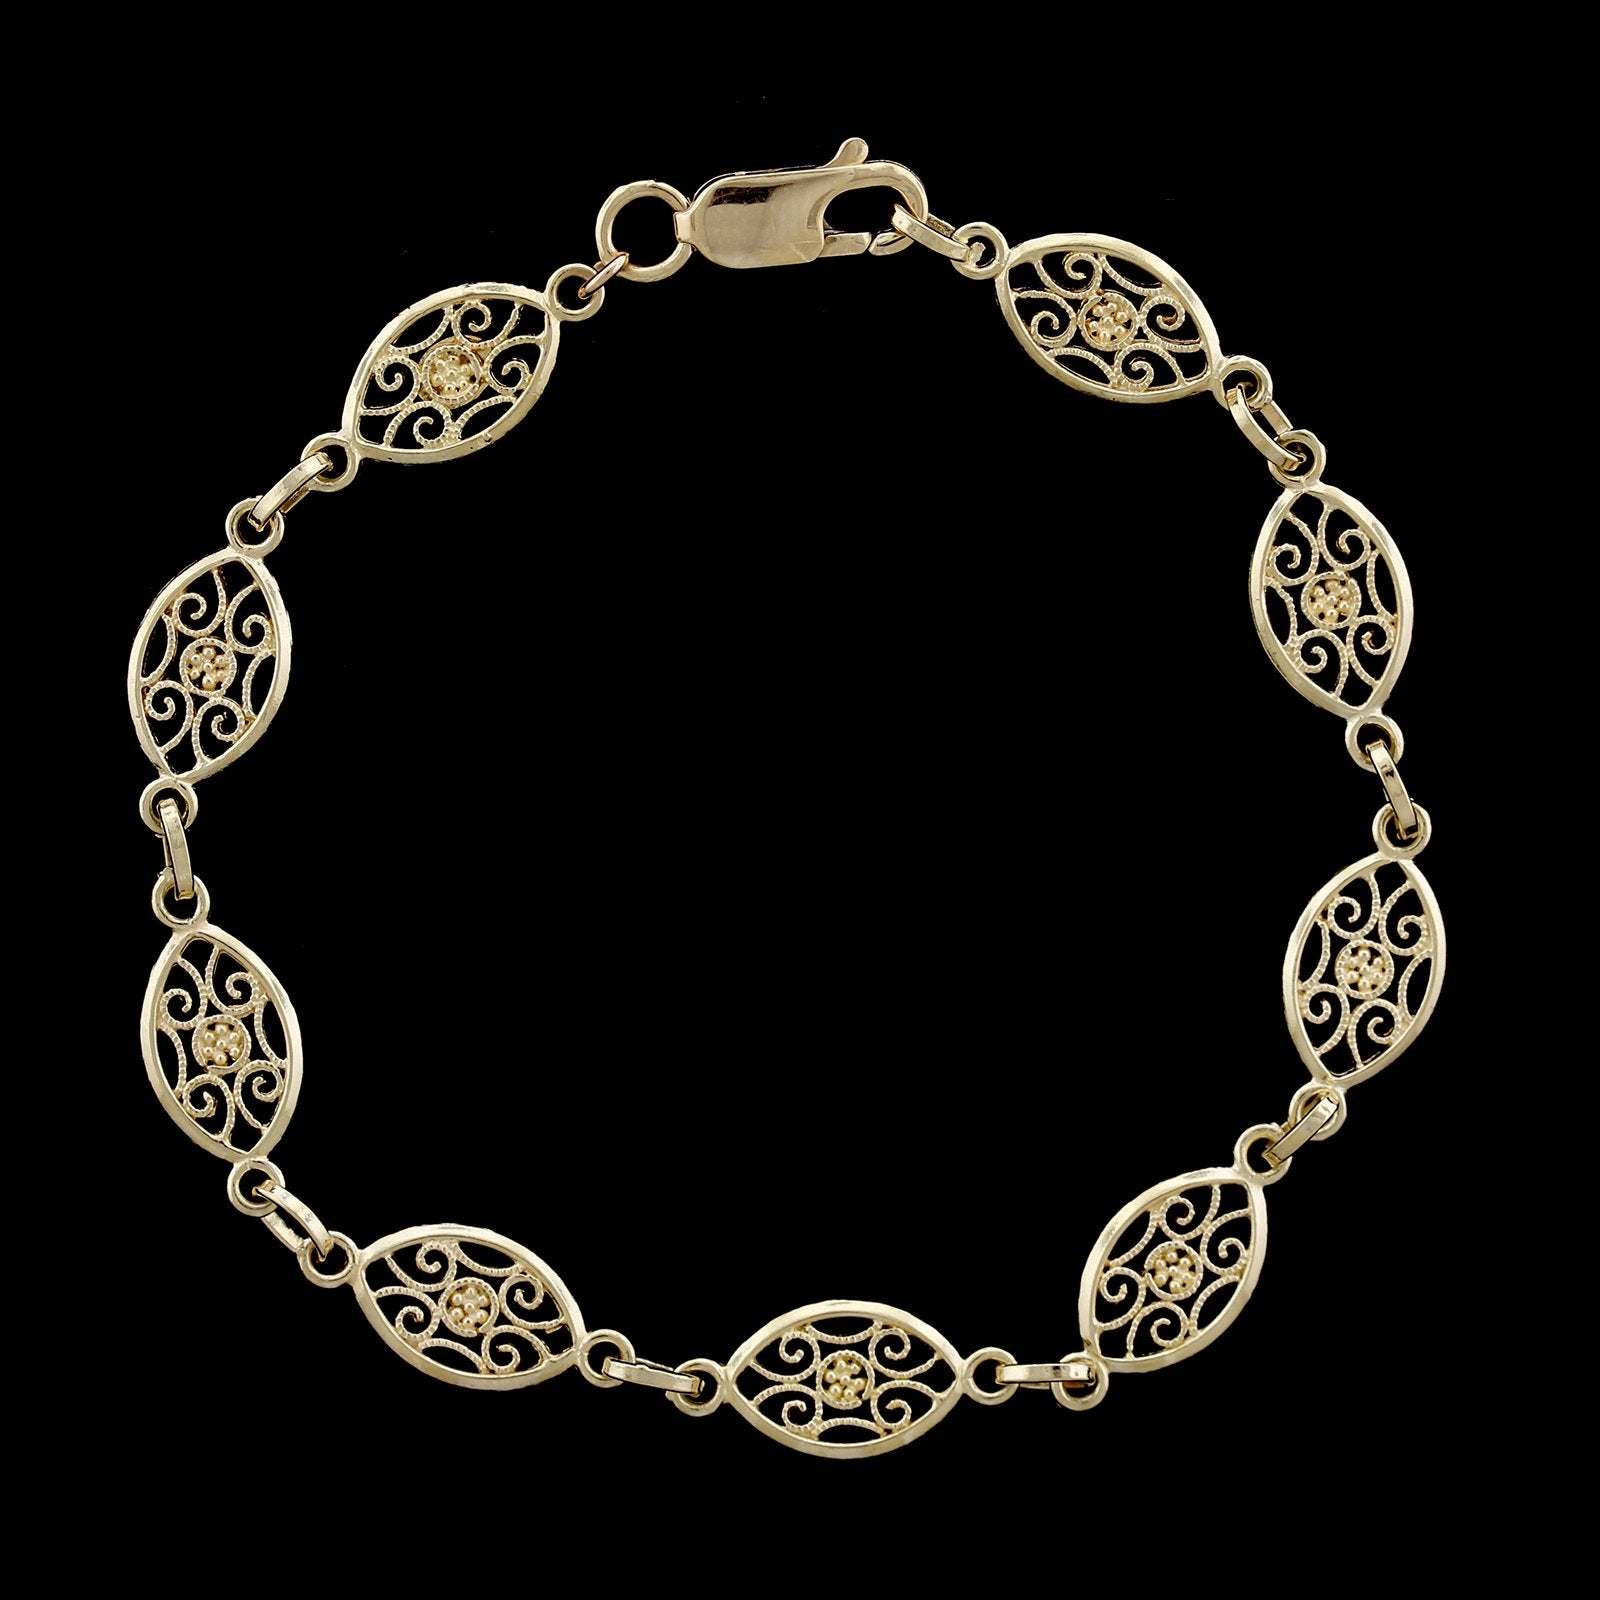 18K Yellow Gold Estate Fancy Link Bracelet